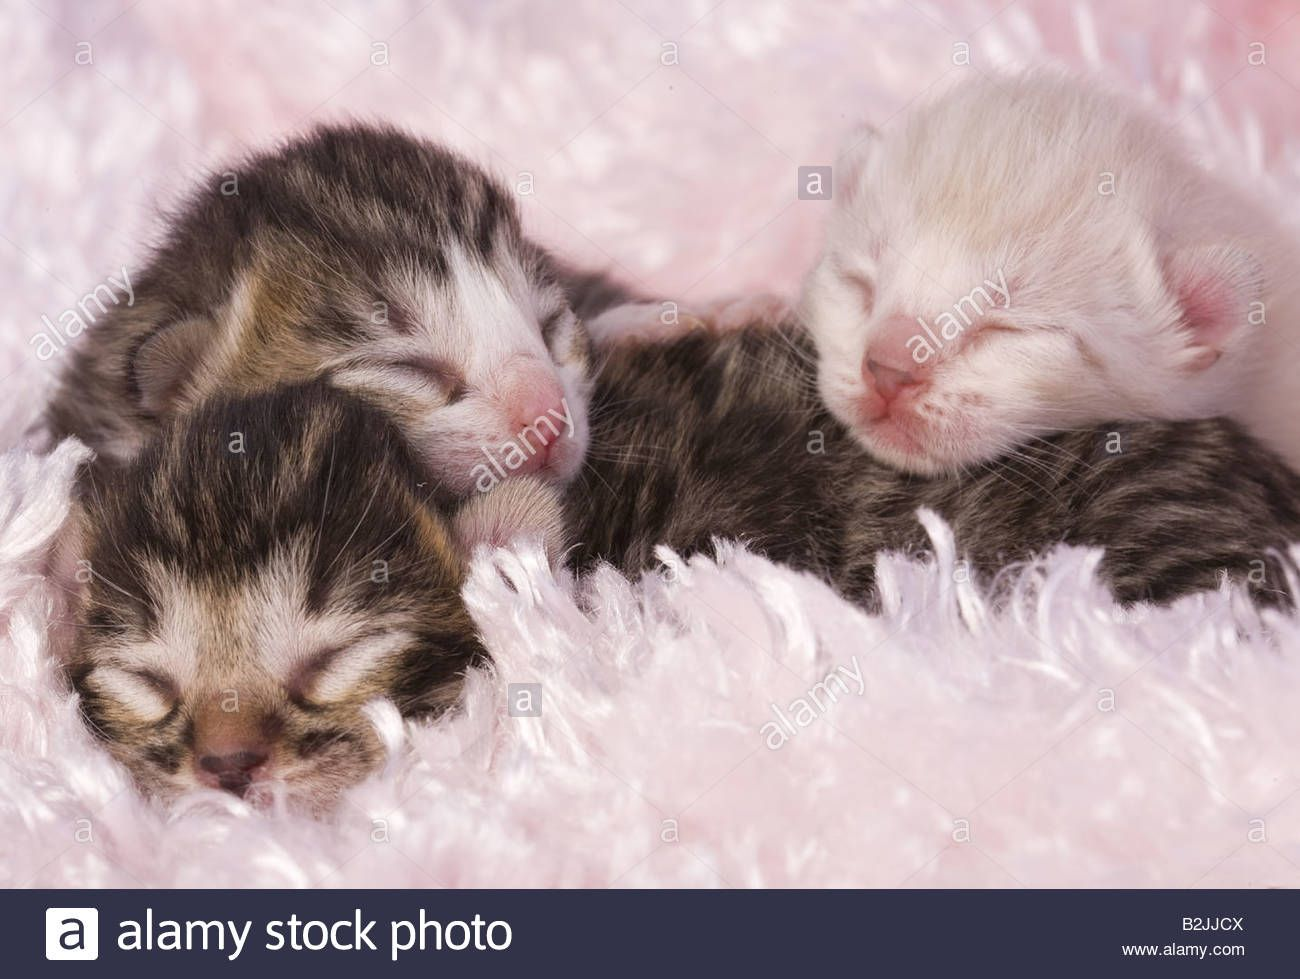 Download This Stock Image Three Newborn Kittens On Pink Background B2jjcx From Alamy S Library Of Millions Of High R Newborn Kittens Kittens Pink Background